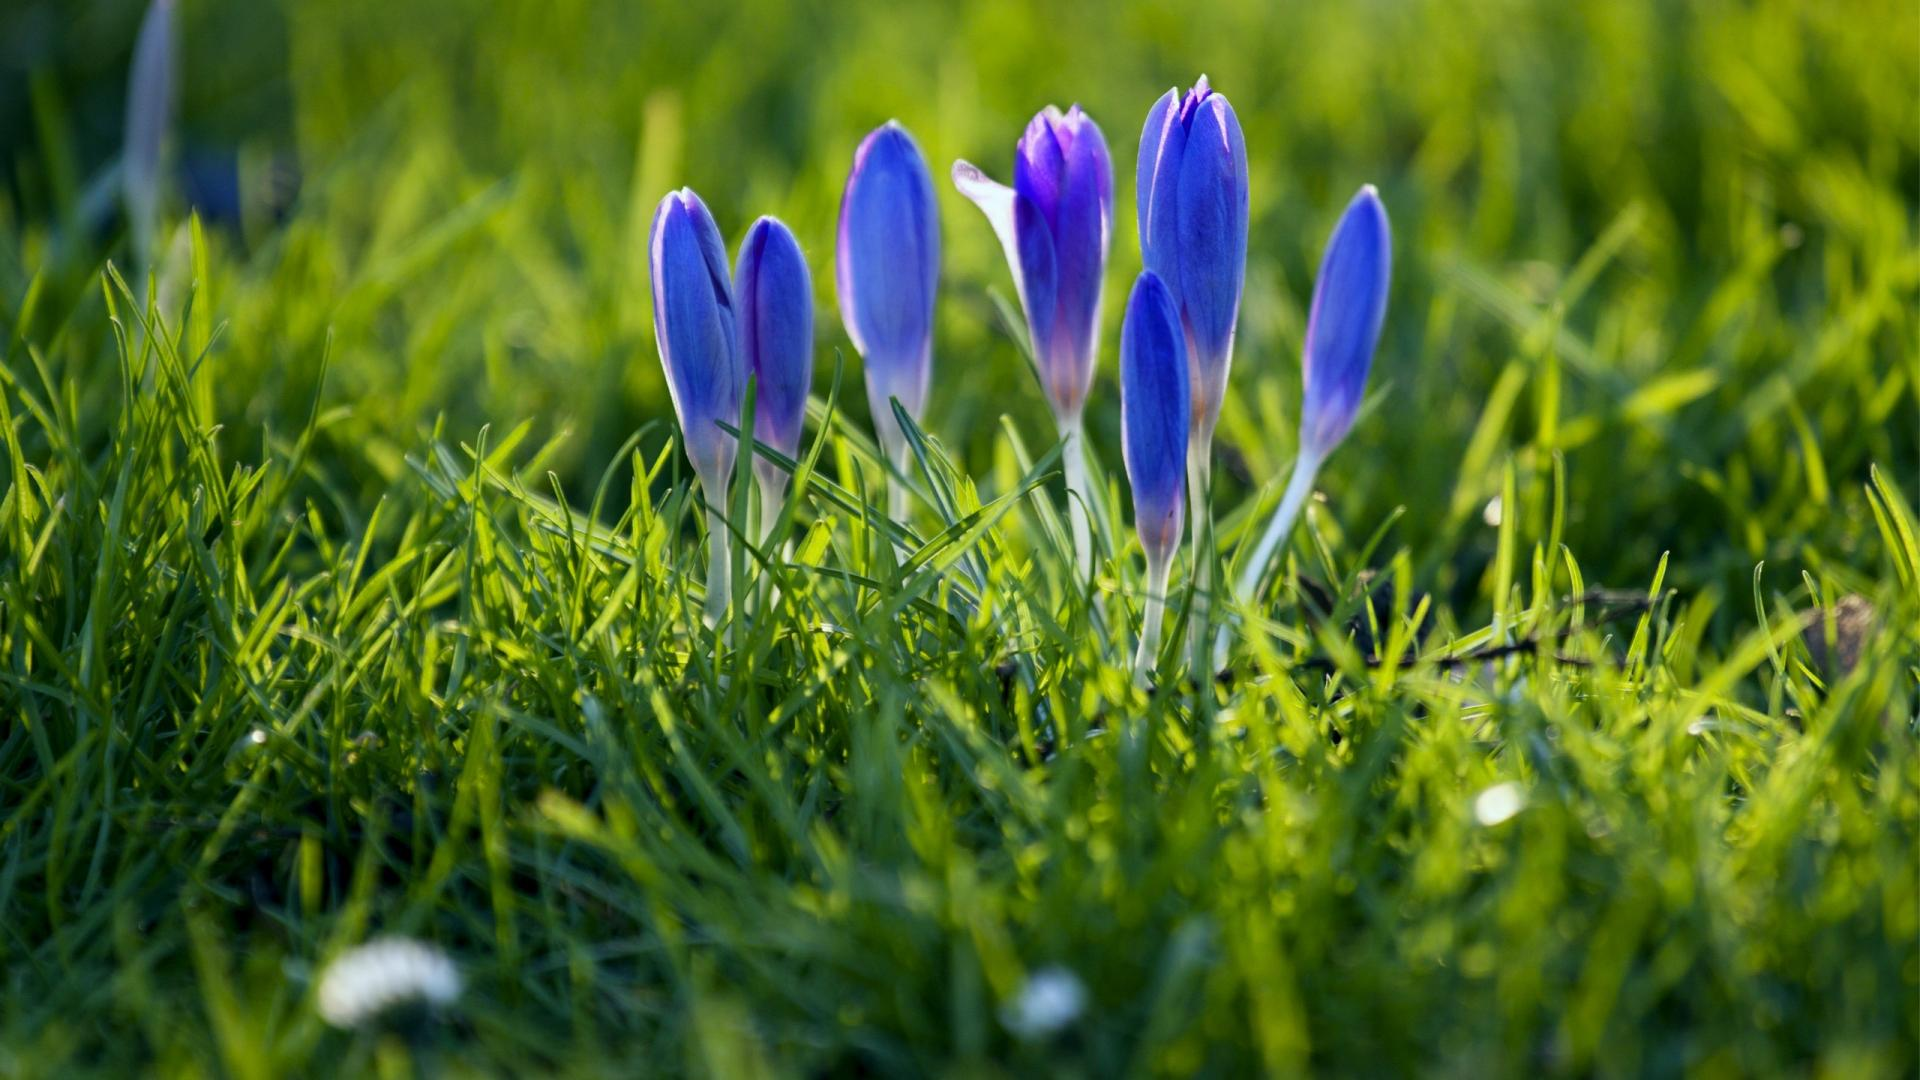 Nature flowers grass crocus blue wallpaper